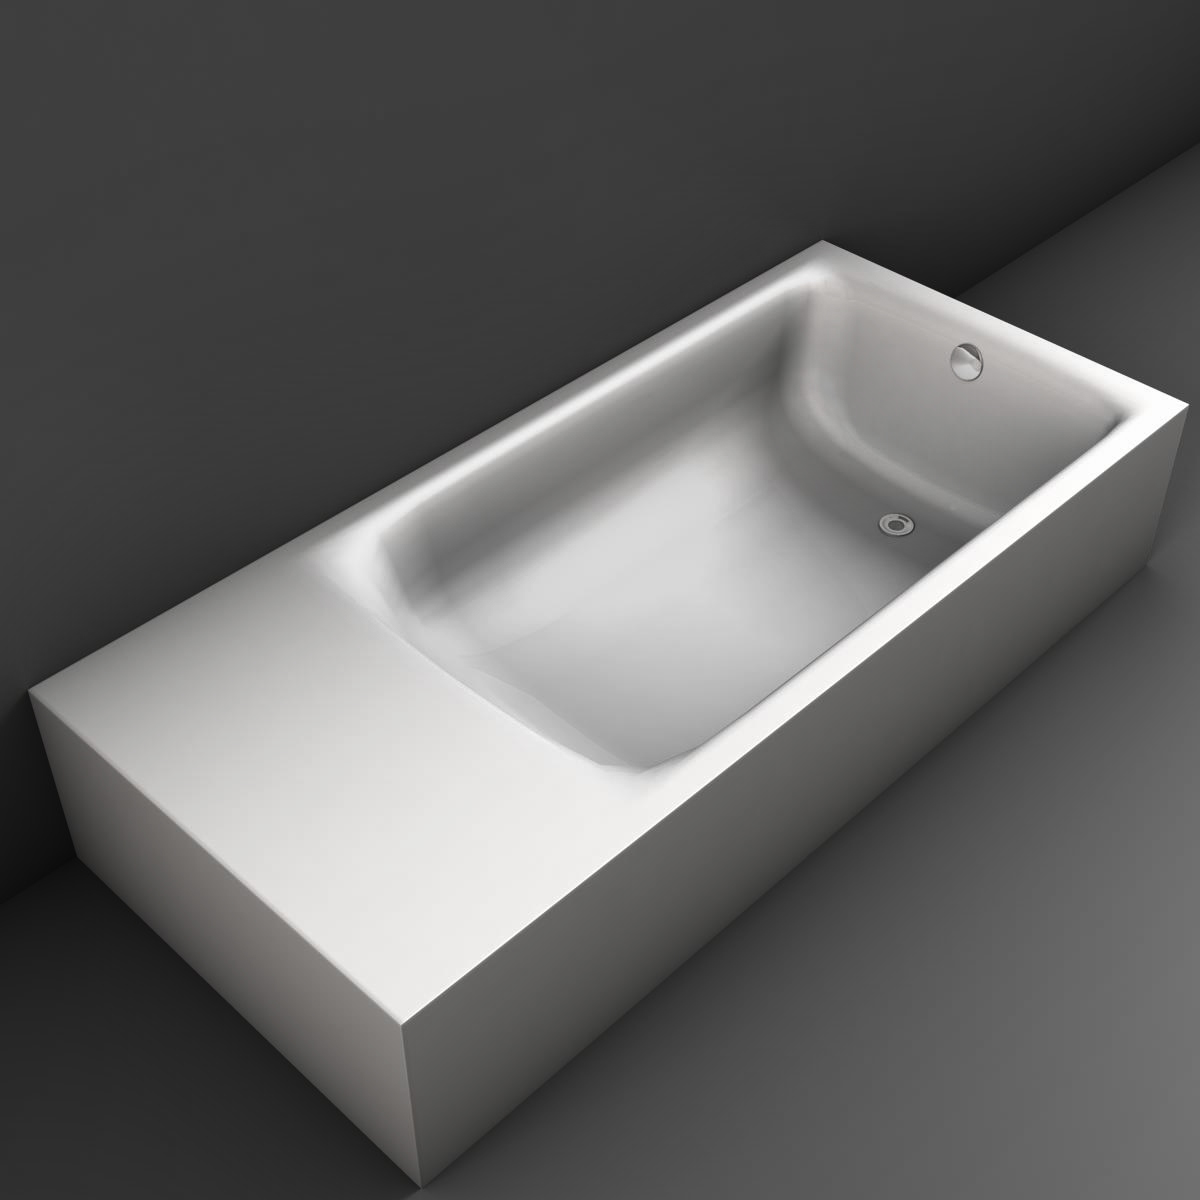 tub 3d model 3ds max fbx ma mb obj 158316